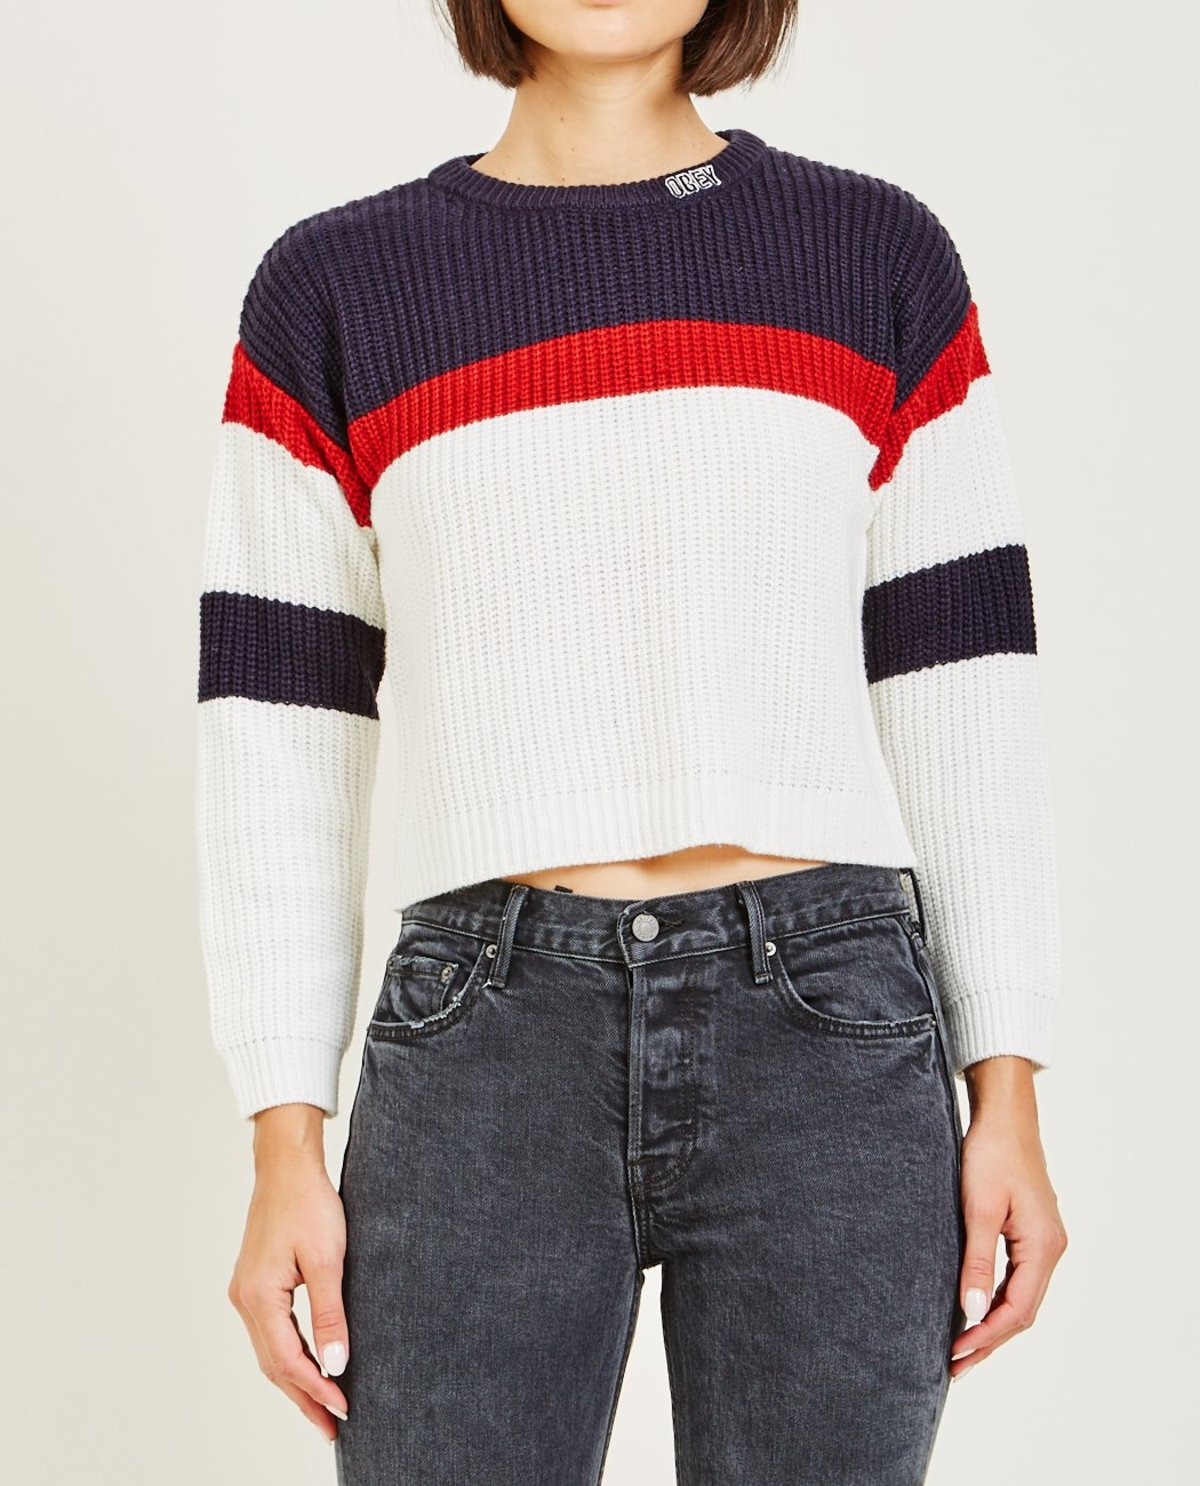 Obey ALLIE STRIPED CREWNECK SWEATER - Navy  5ced560d4